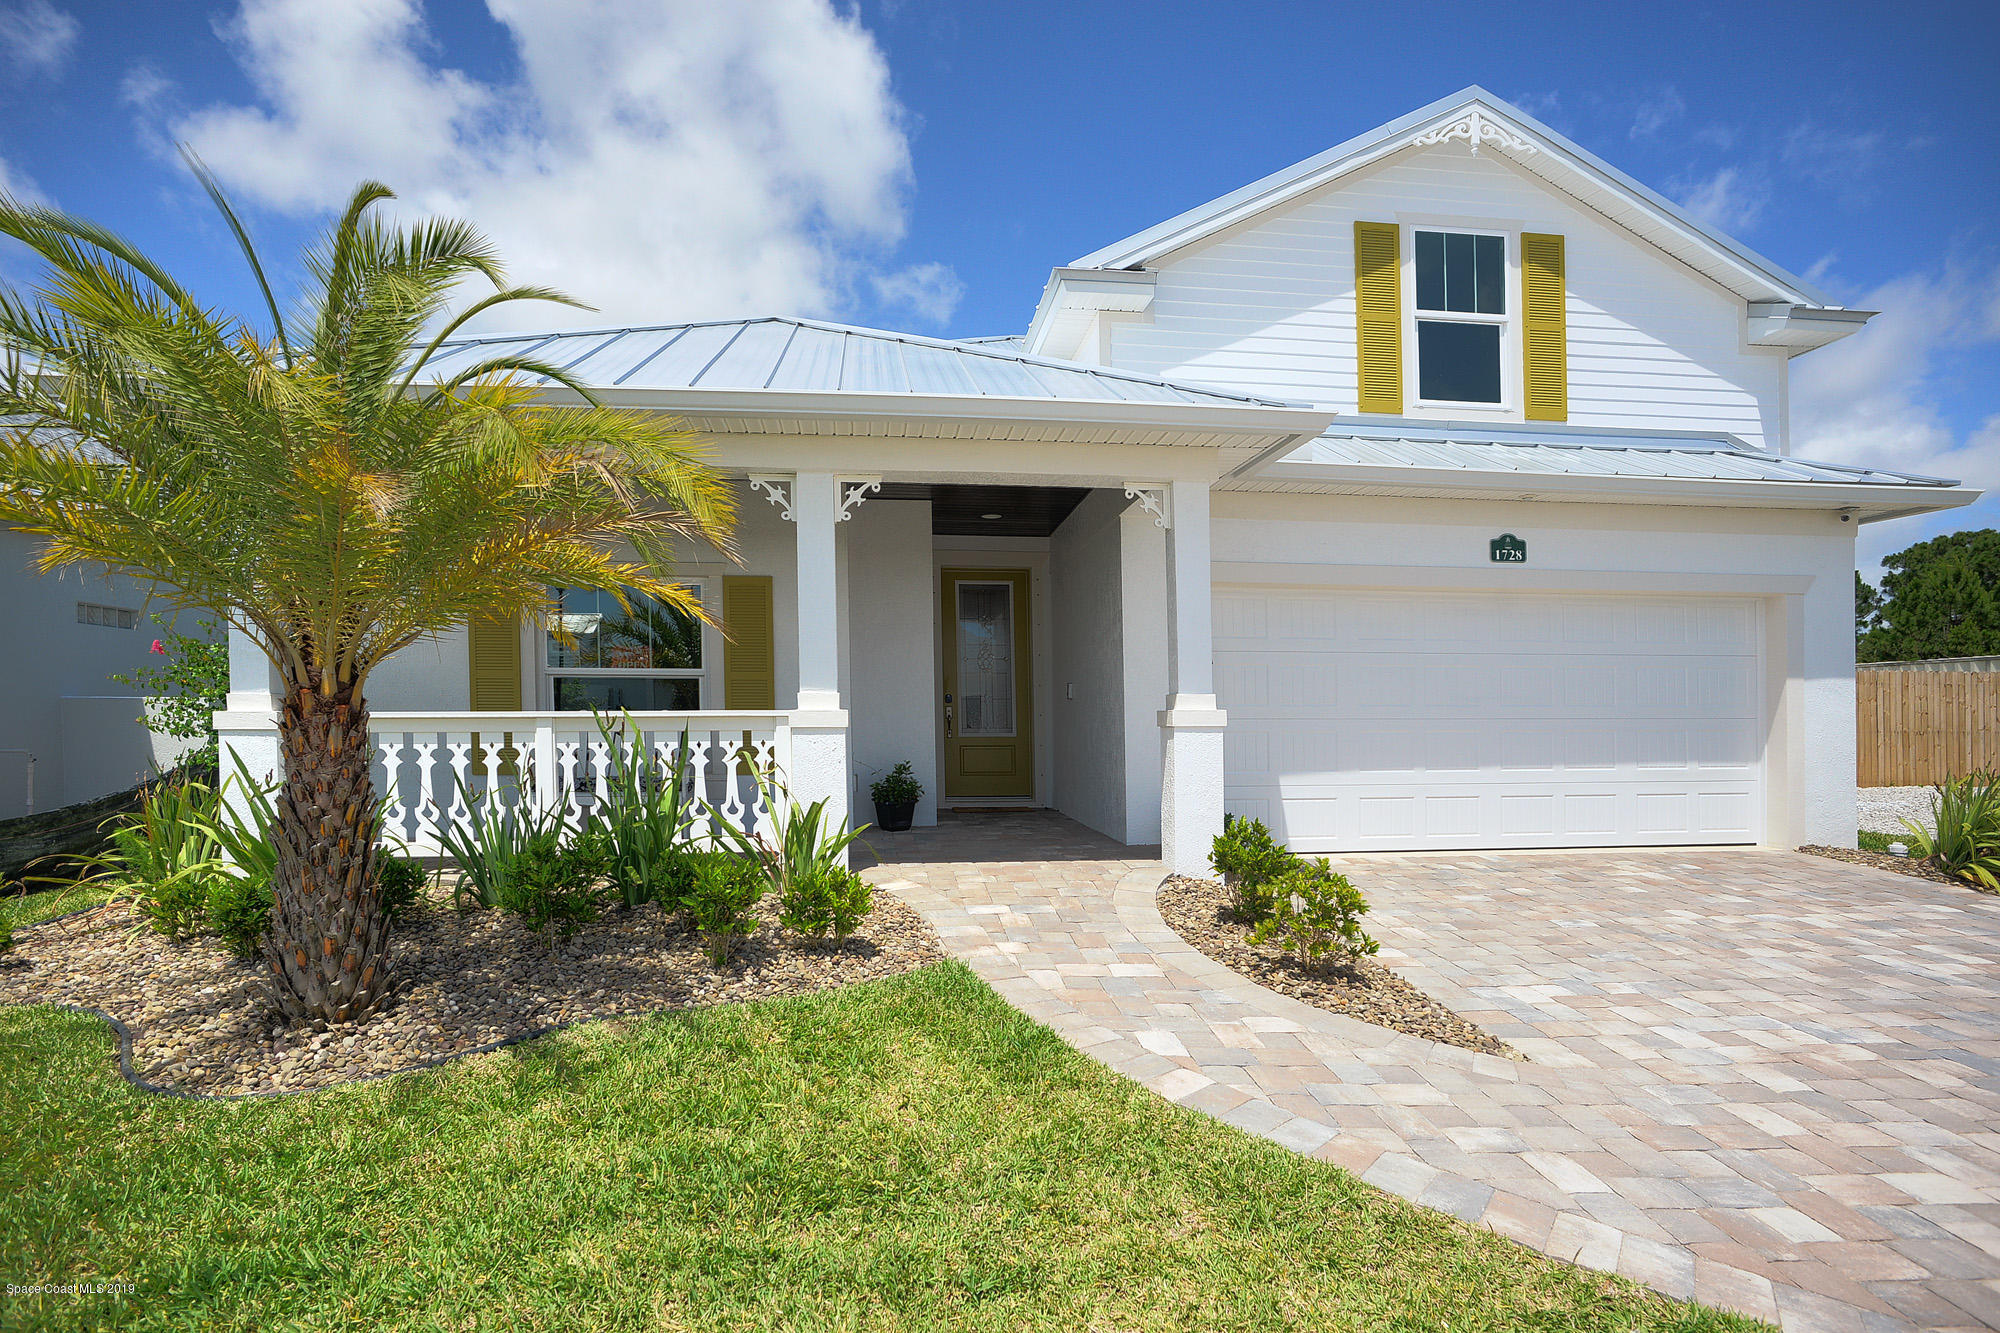 Single Family Homes for Sale at 1728 Tullagee Melbourne, Florida 32940 United States